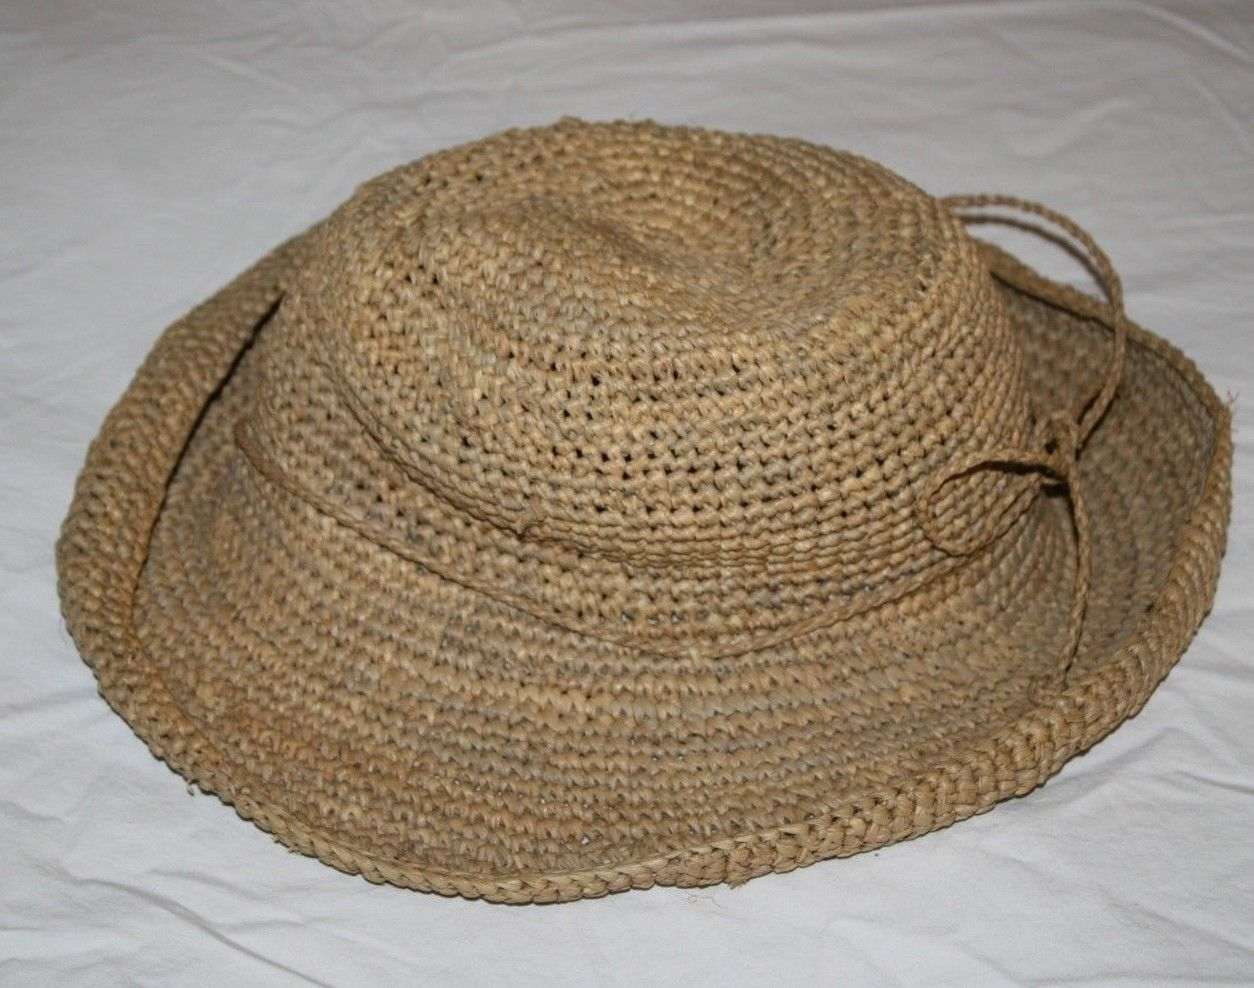 d5fdd2a077f74 The Scala Collection Womens Straw Hat Beach and 21 similar items